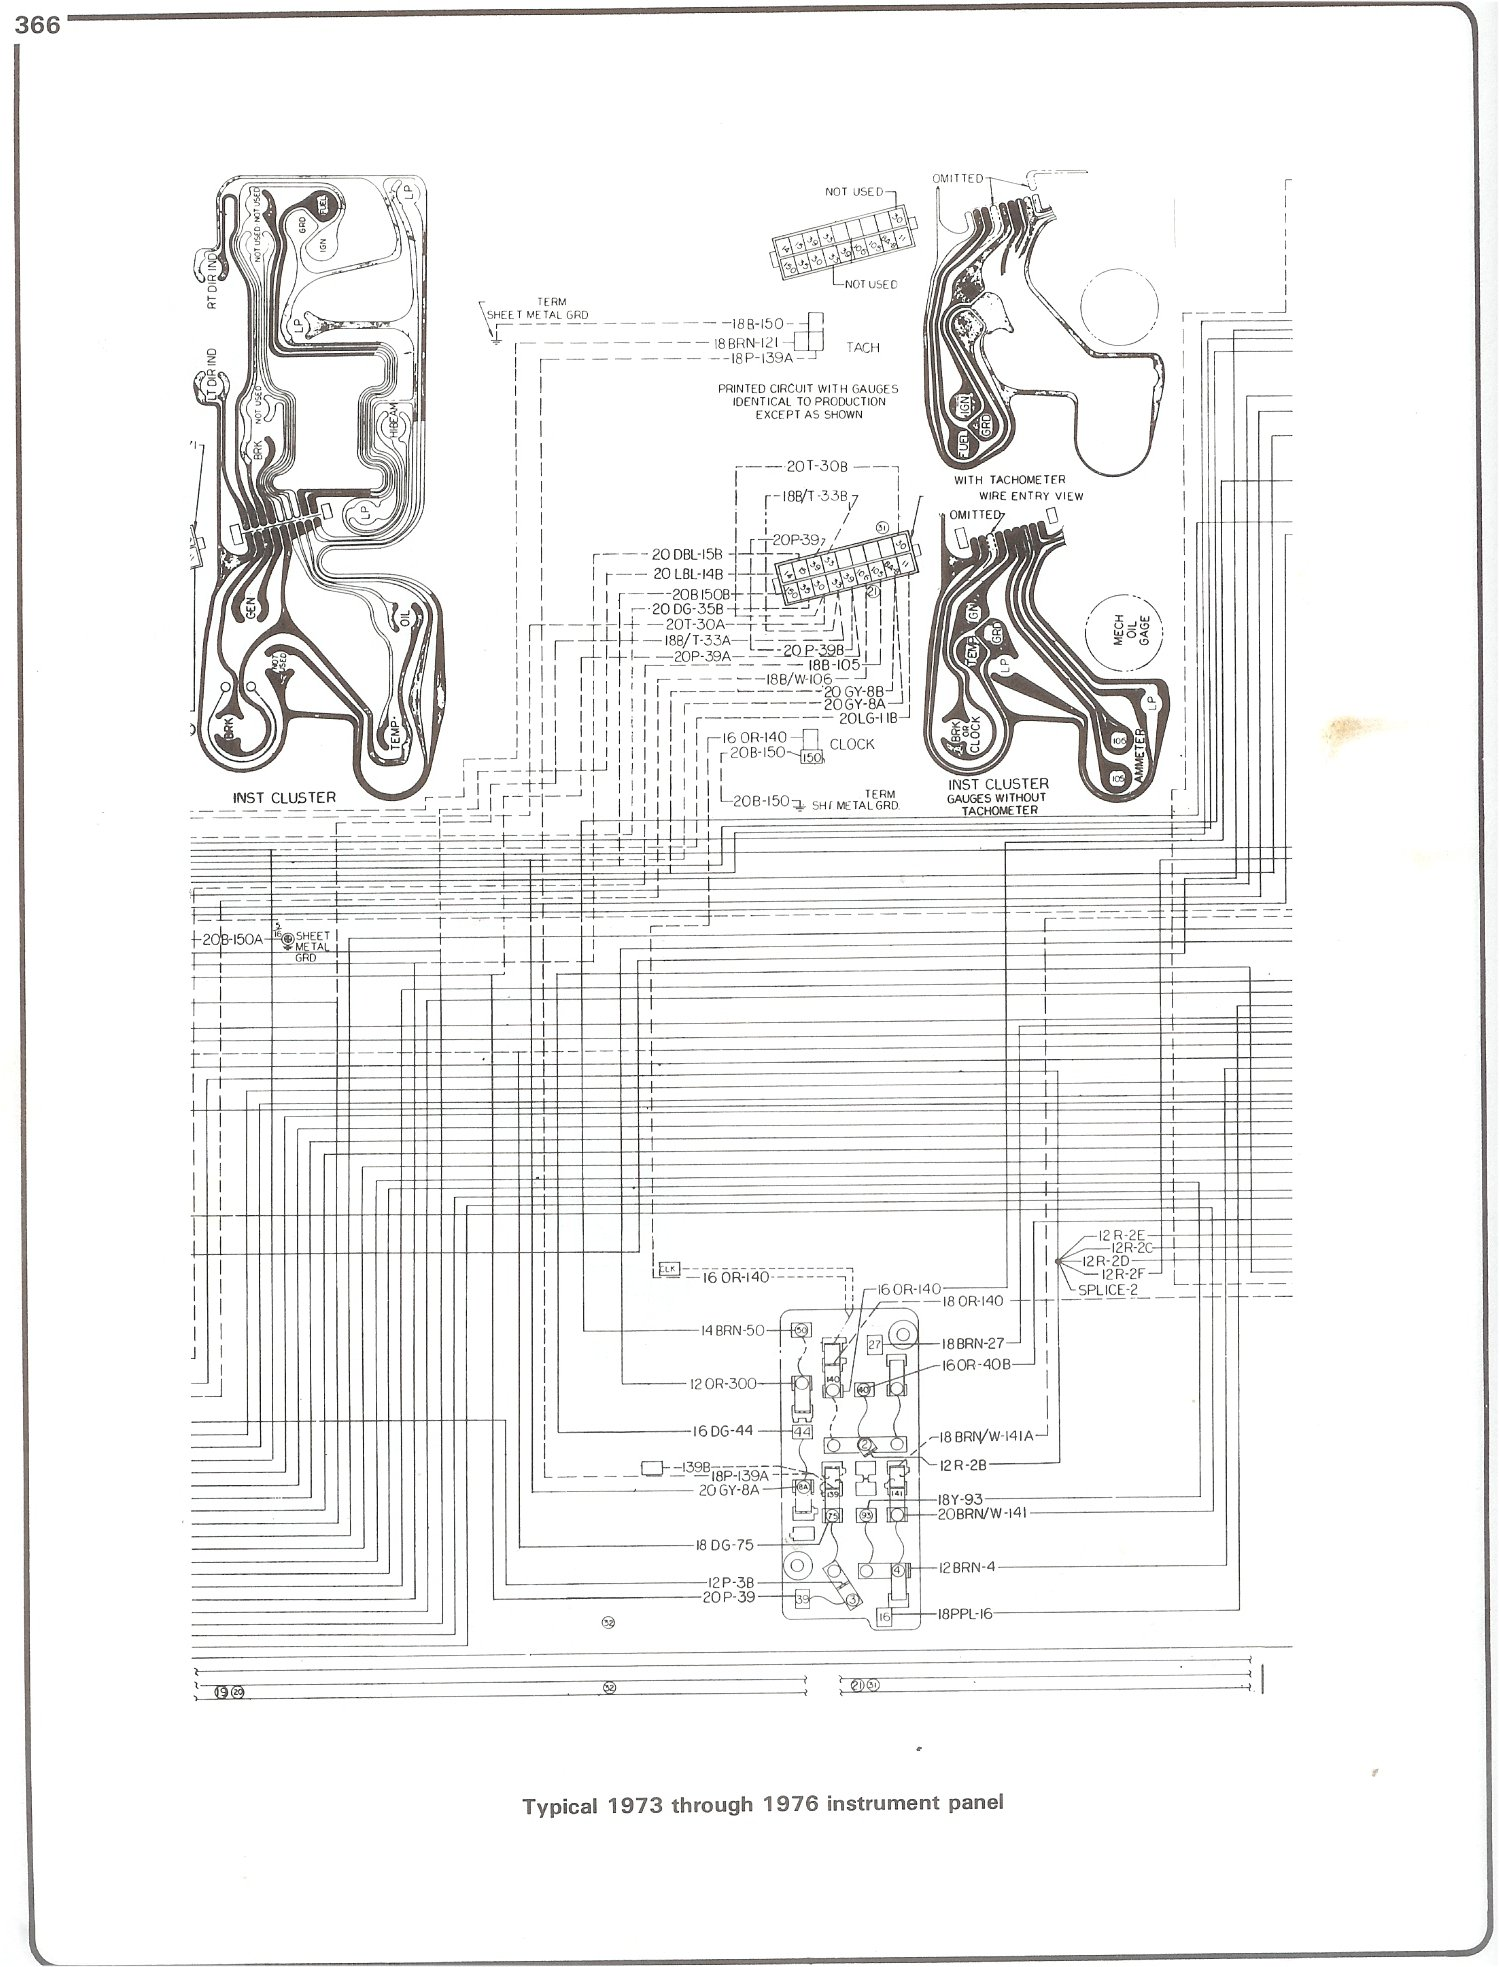 complete 73 87 wiring diagrams rh forum 73 87chevytrucks com GMC Sierra Stereo Wiring Diagram Chevy Truck Wiring Diagram